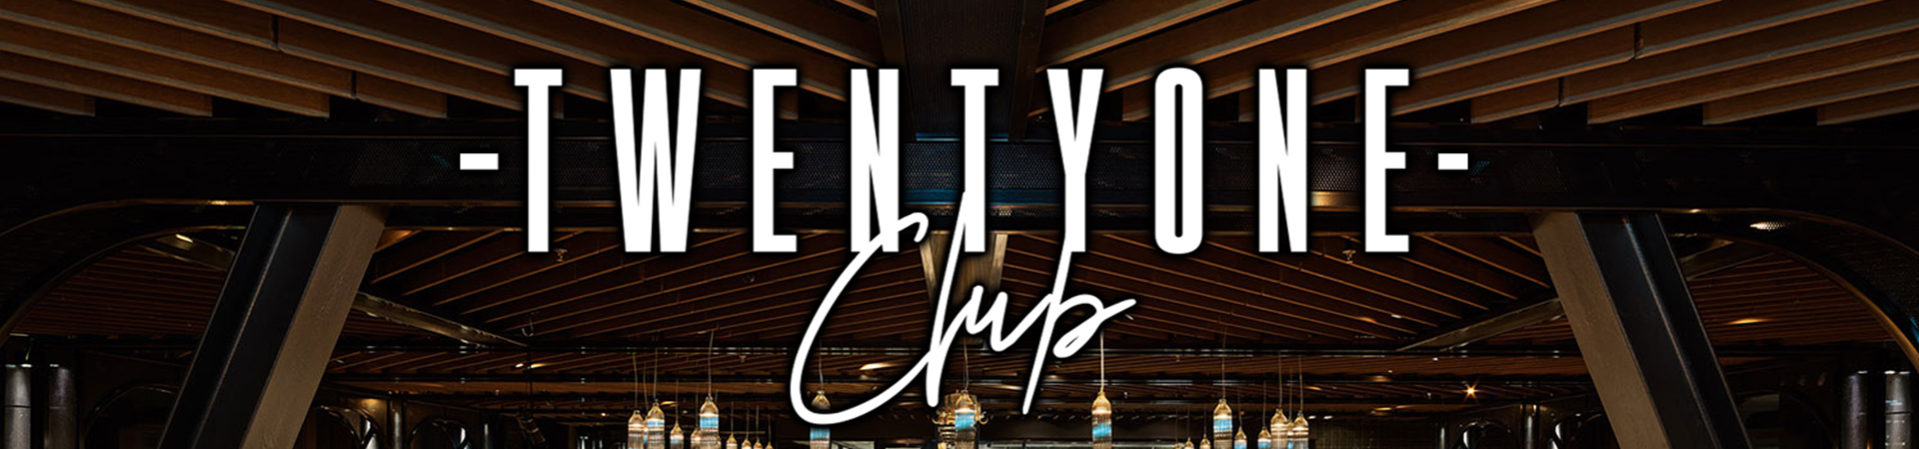 TwentyOne Club 1920x450